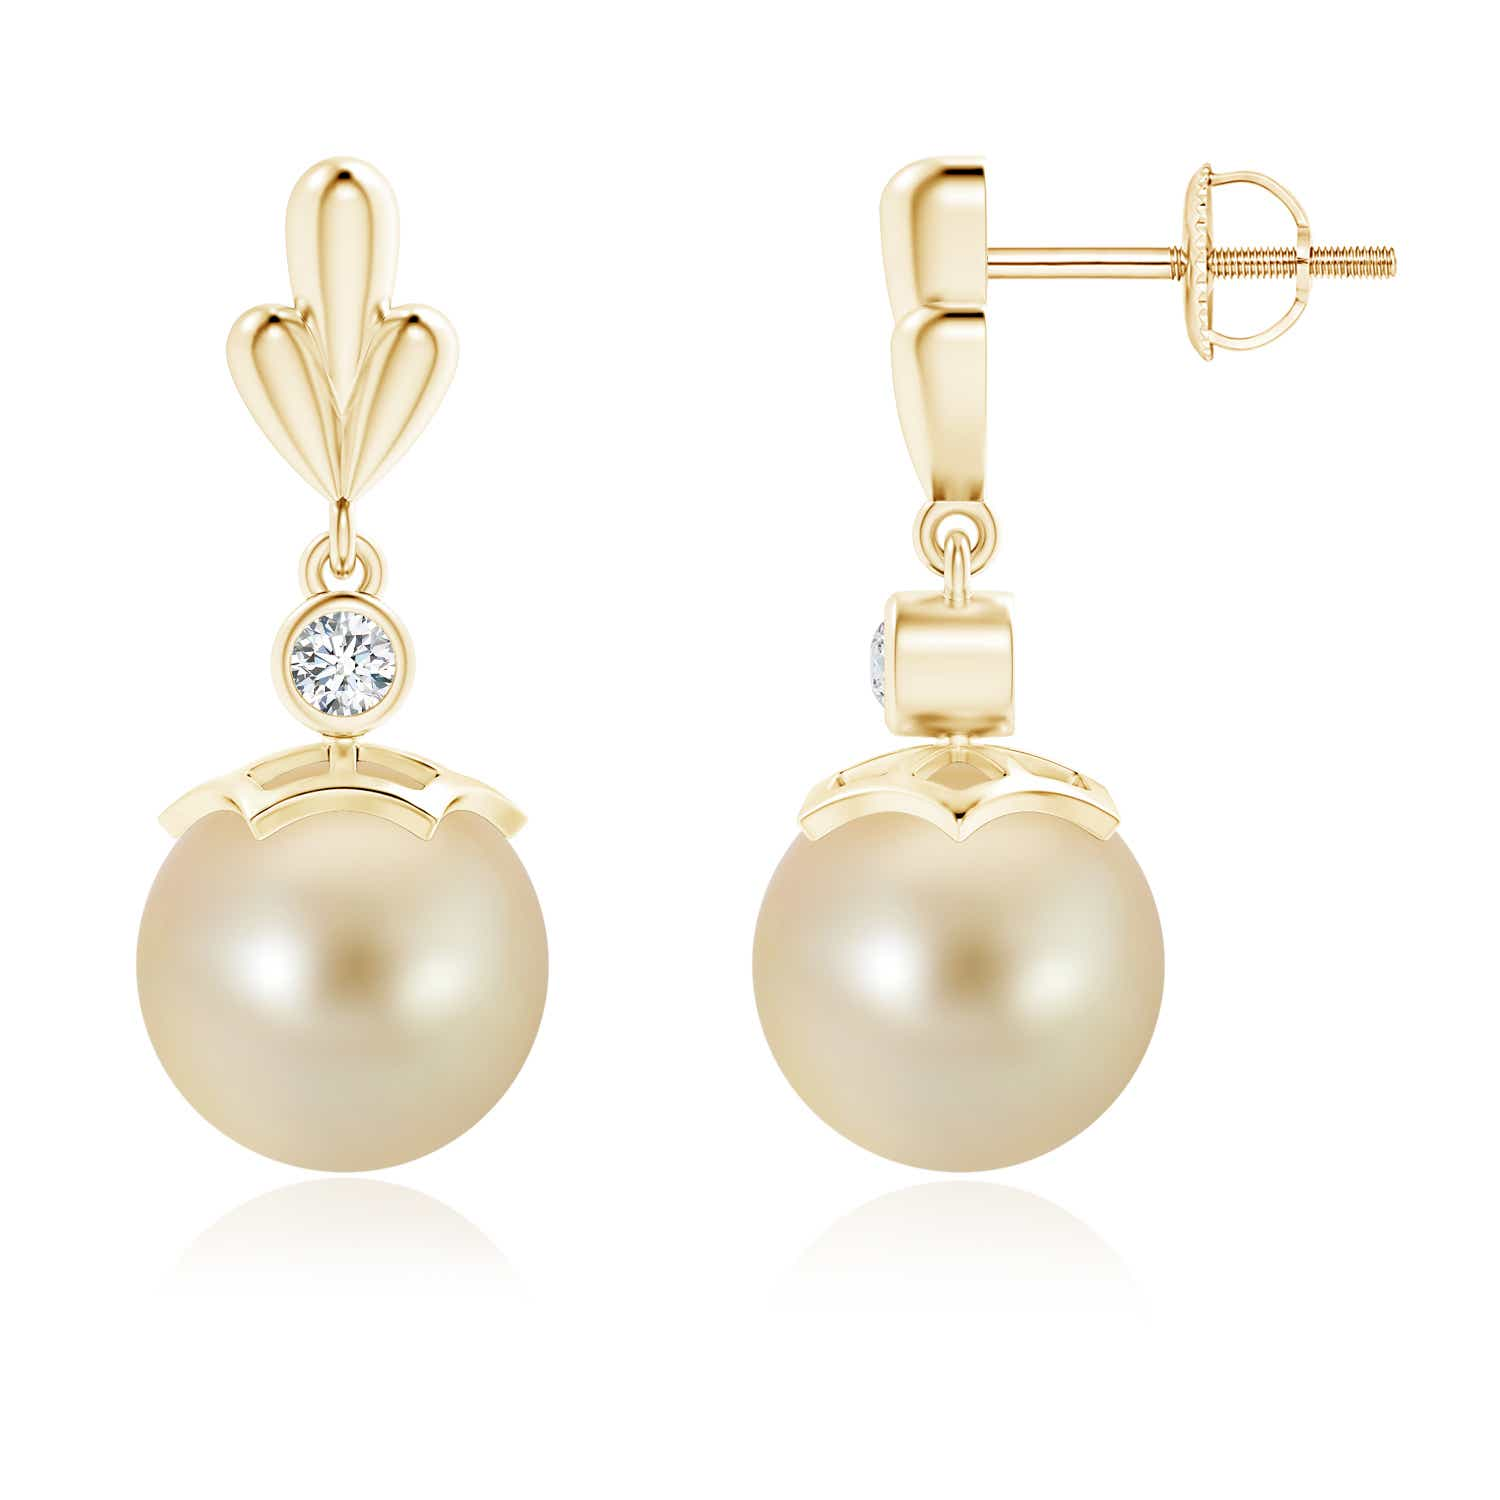 Angara Golden South Sea Cultured Pearl Earrings with Pear Motifs BbFZuY2uy